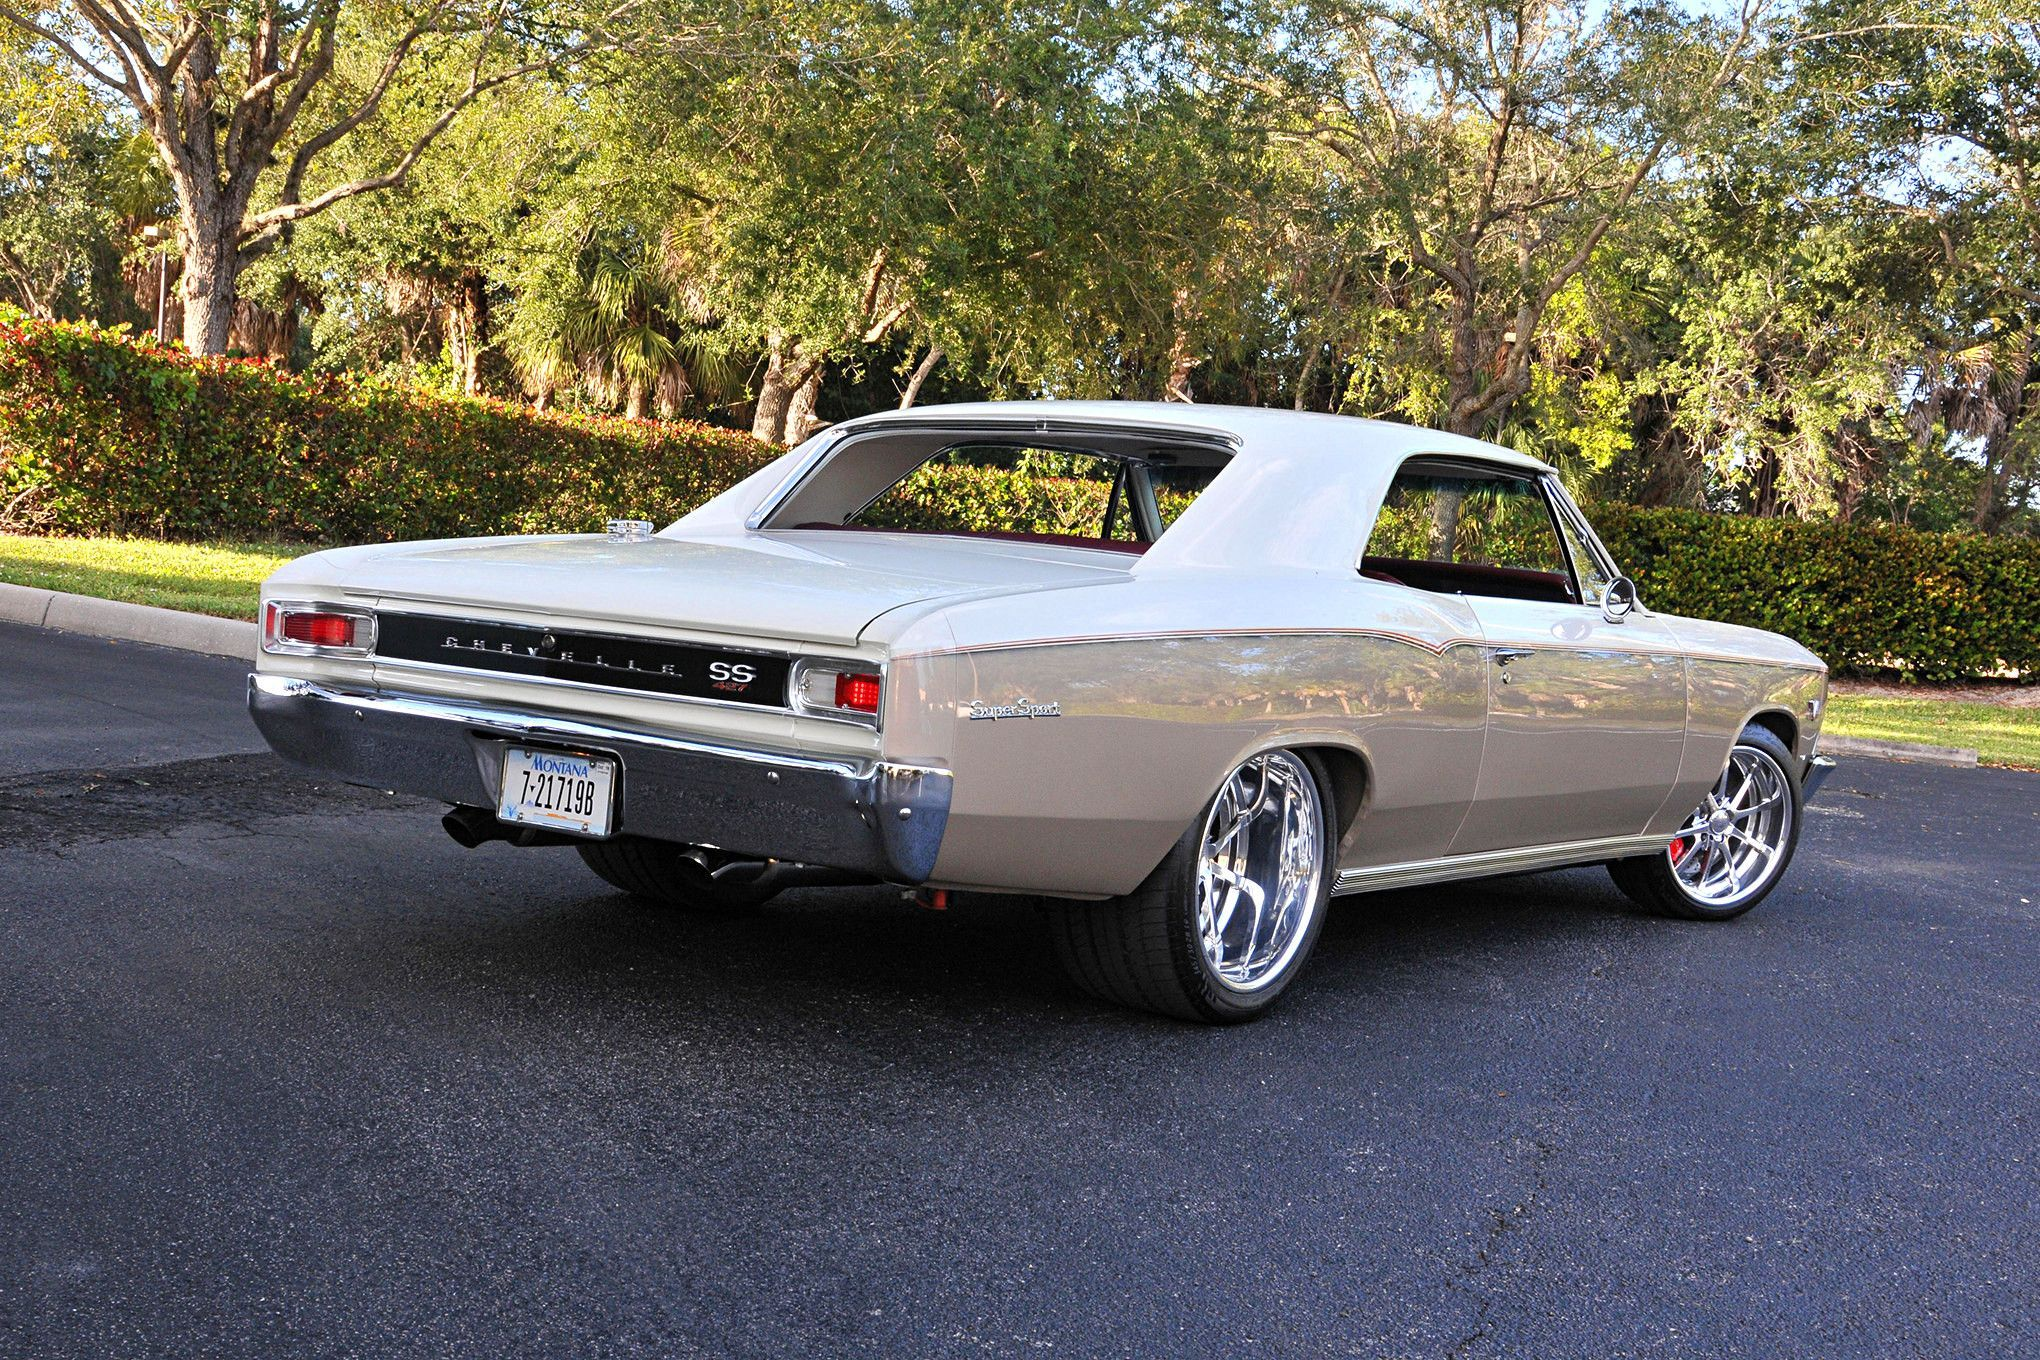 Best 25 1966 chevelle ideas on pinterest chevy chevelle ss muscle cars and chevrolet chevelle